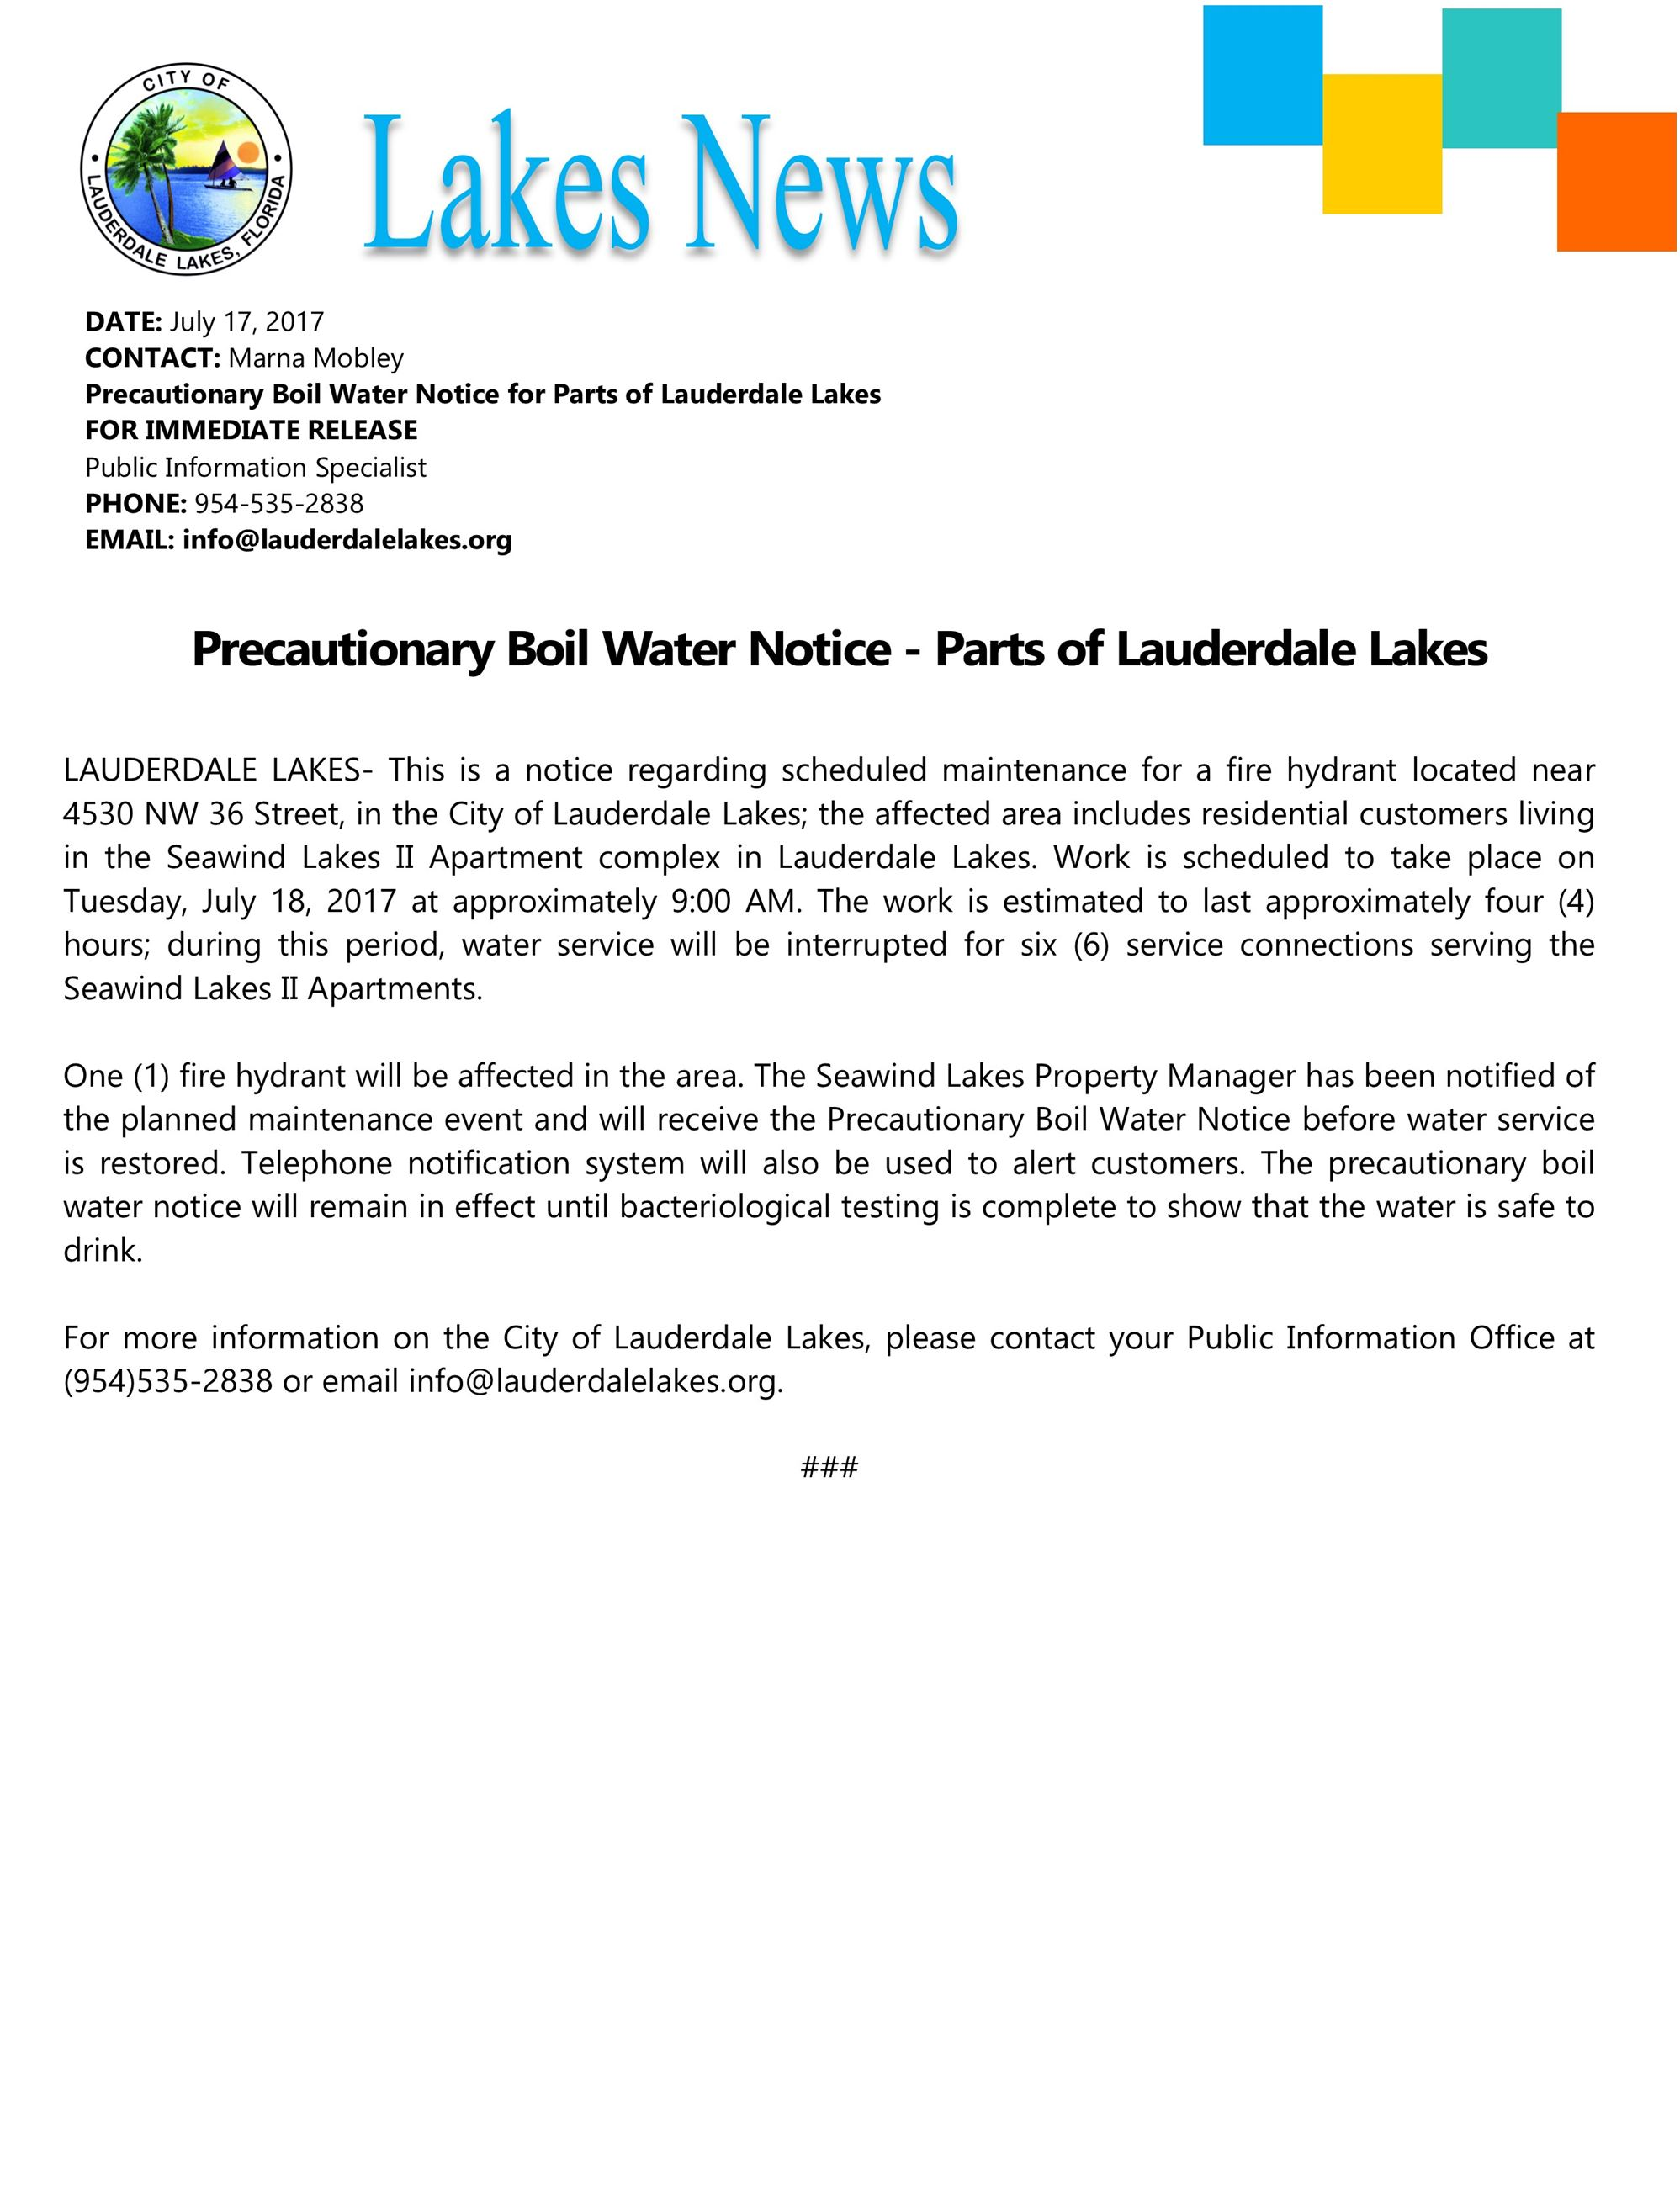 Lauderdale Lakes, FL - Official Website